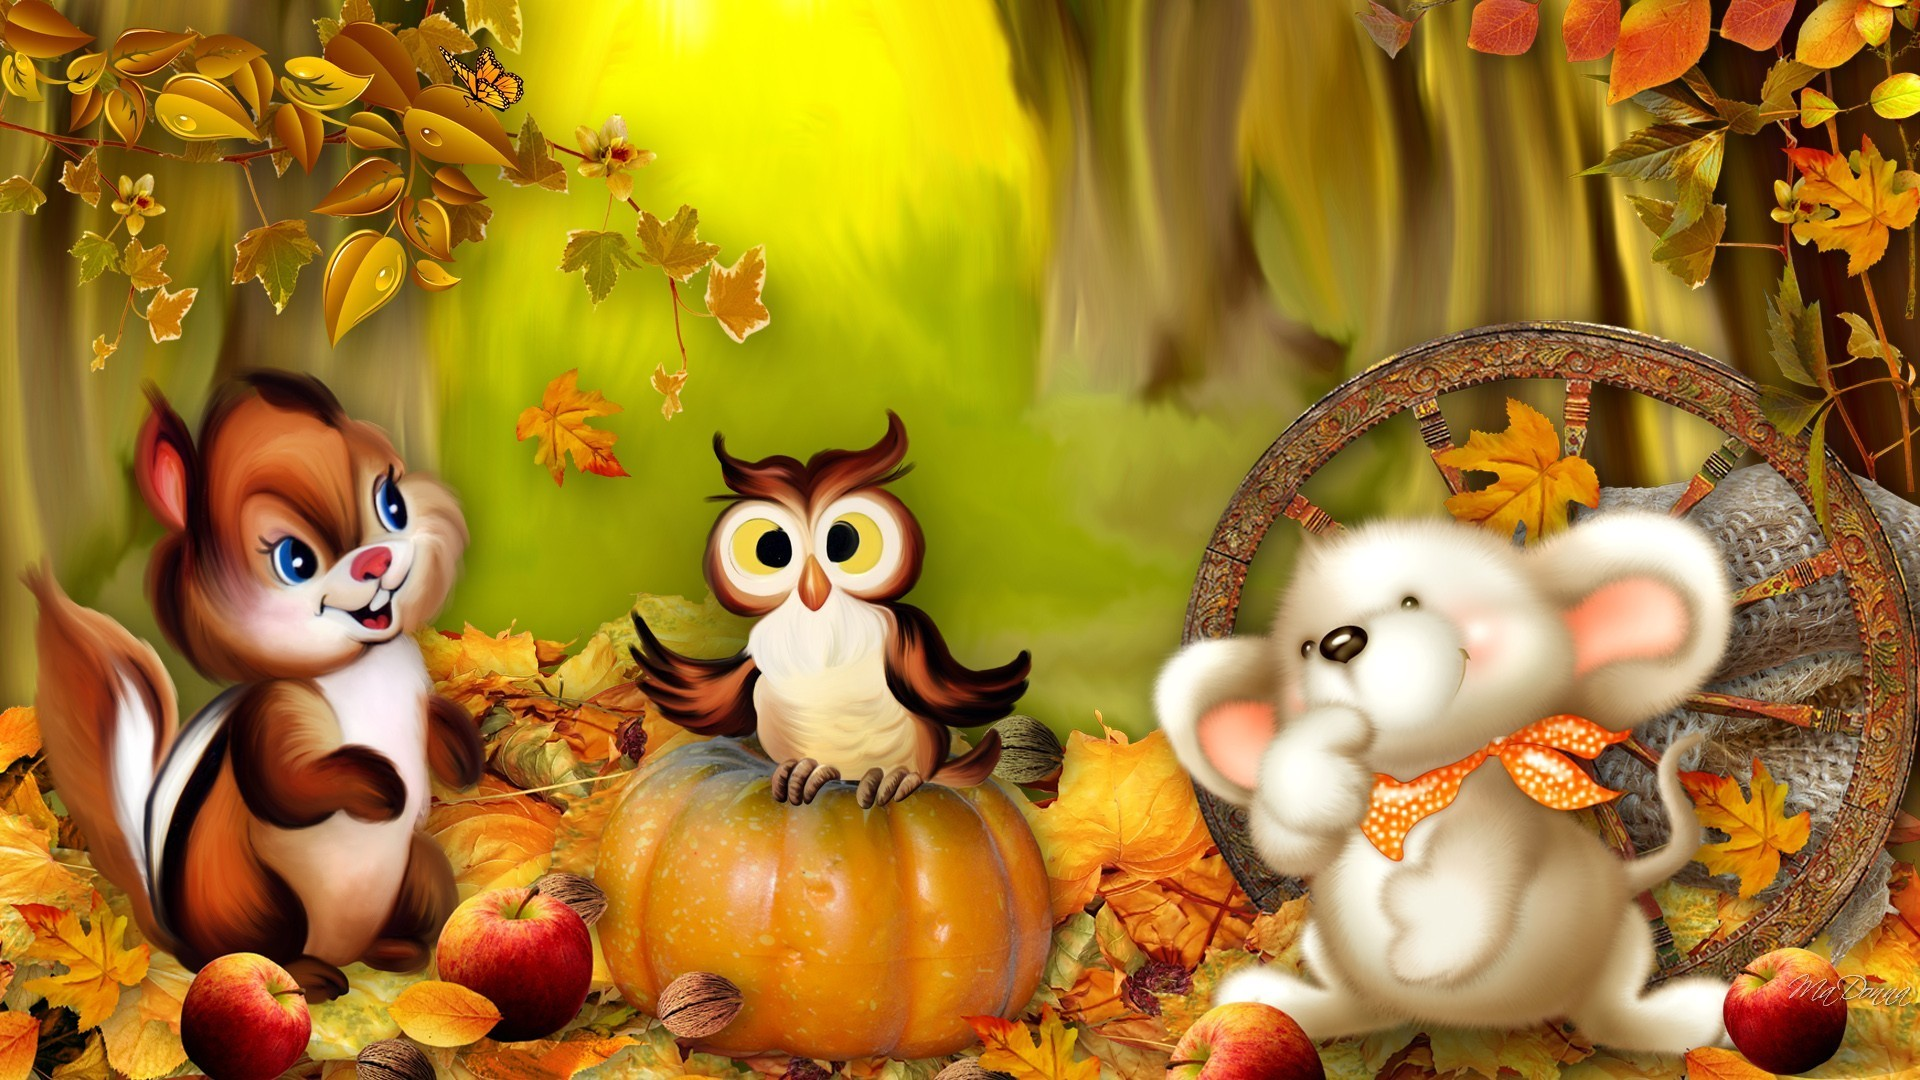 Fall Wallpaper Backgrounds With Pumpkins 55 images 1920x1080